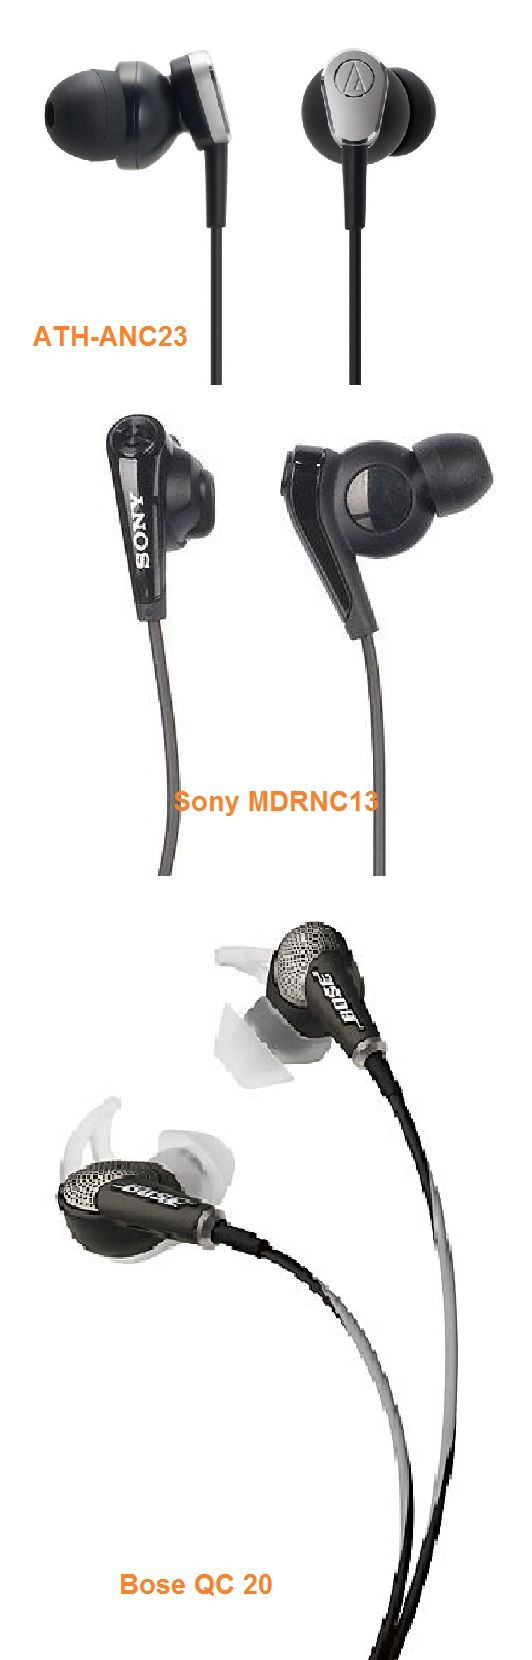 3 Best noise cancelling earbuds 2014